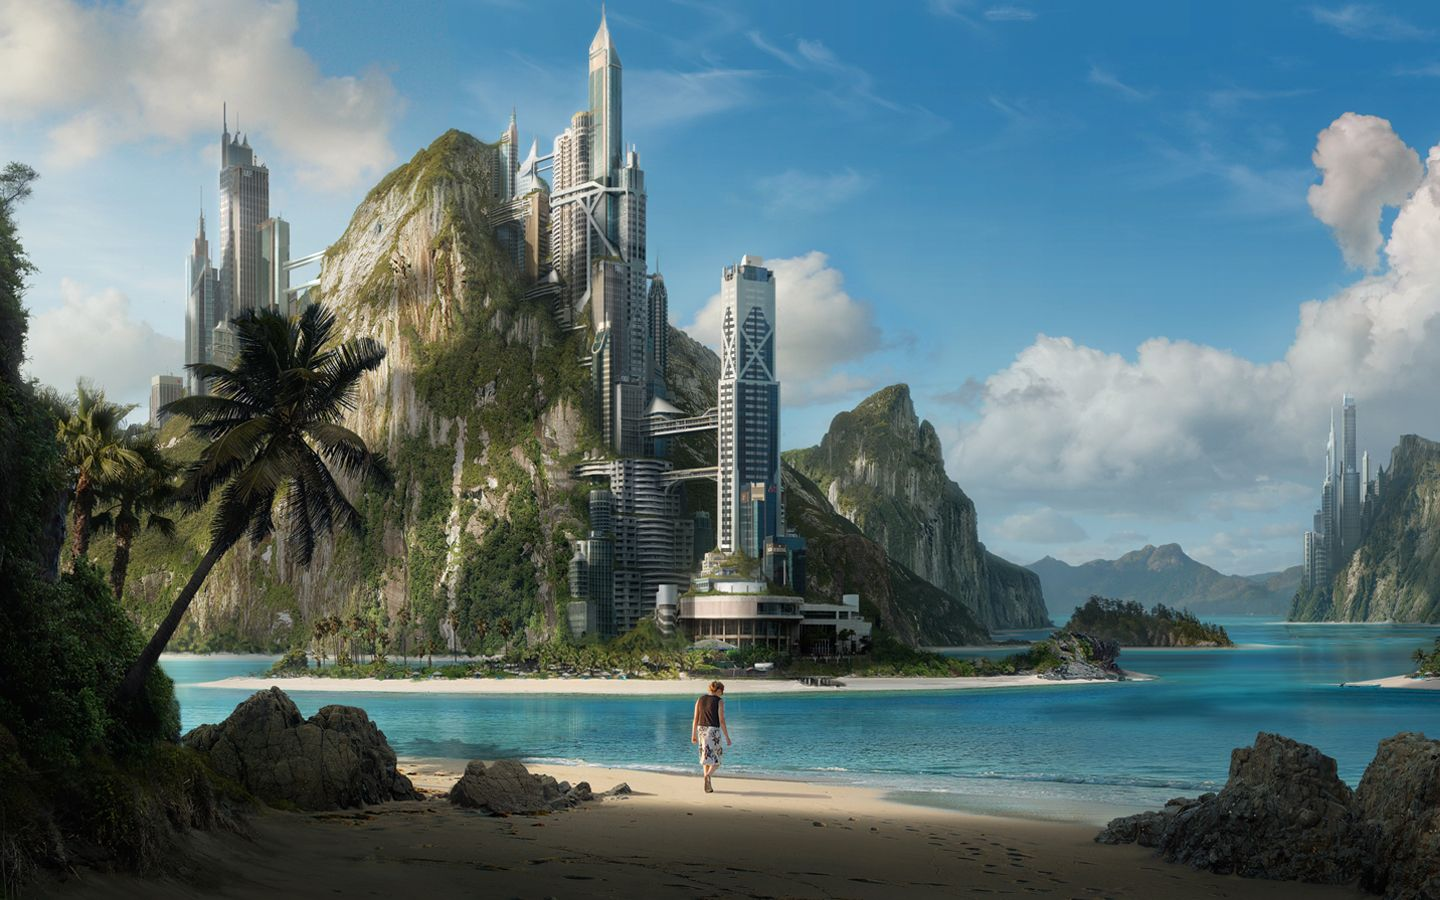 City built into a mountain AND on a tropical island!    (51459.jpg (1440×900) -- http://wall.alphacoders.com/big.php?i=51459)